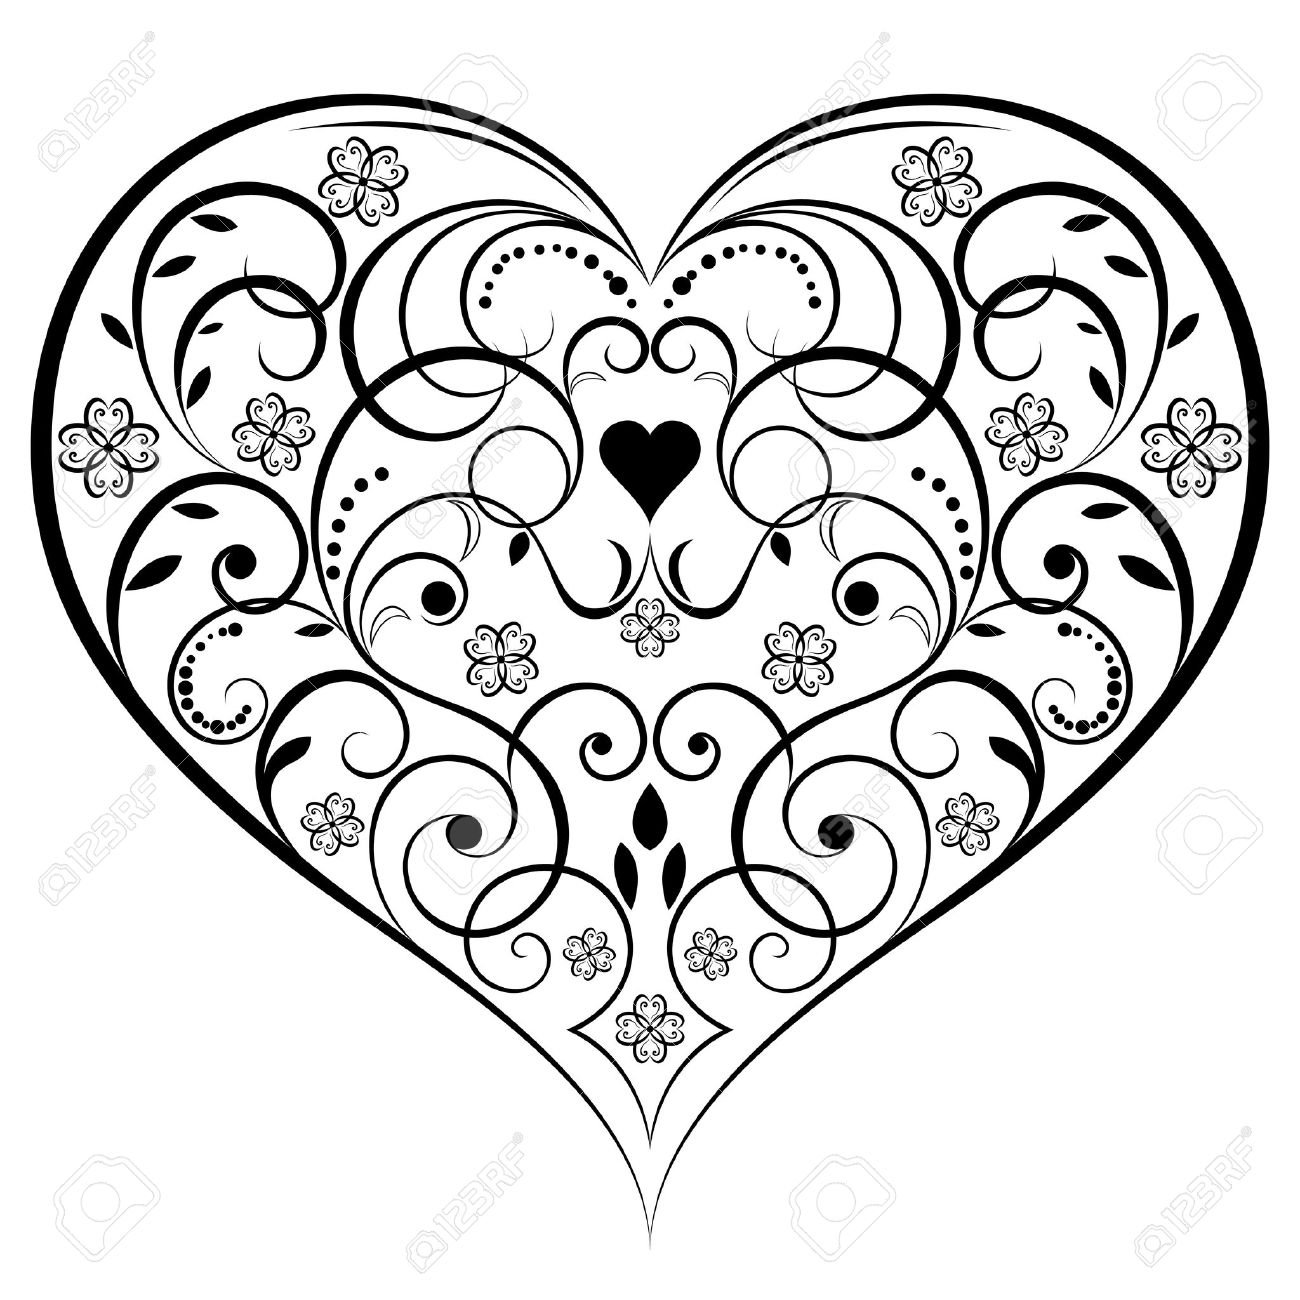 Heart-shaped clipart drawn Images ) Find Royalty Heart